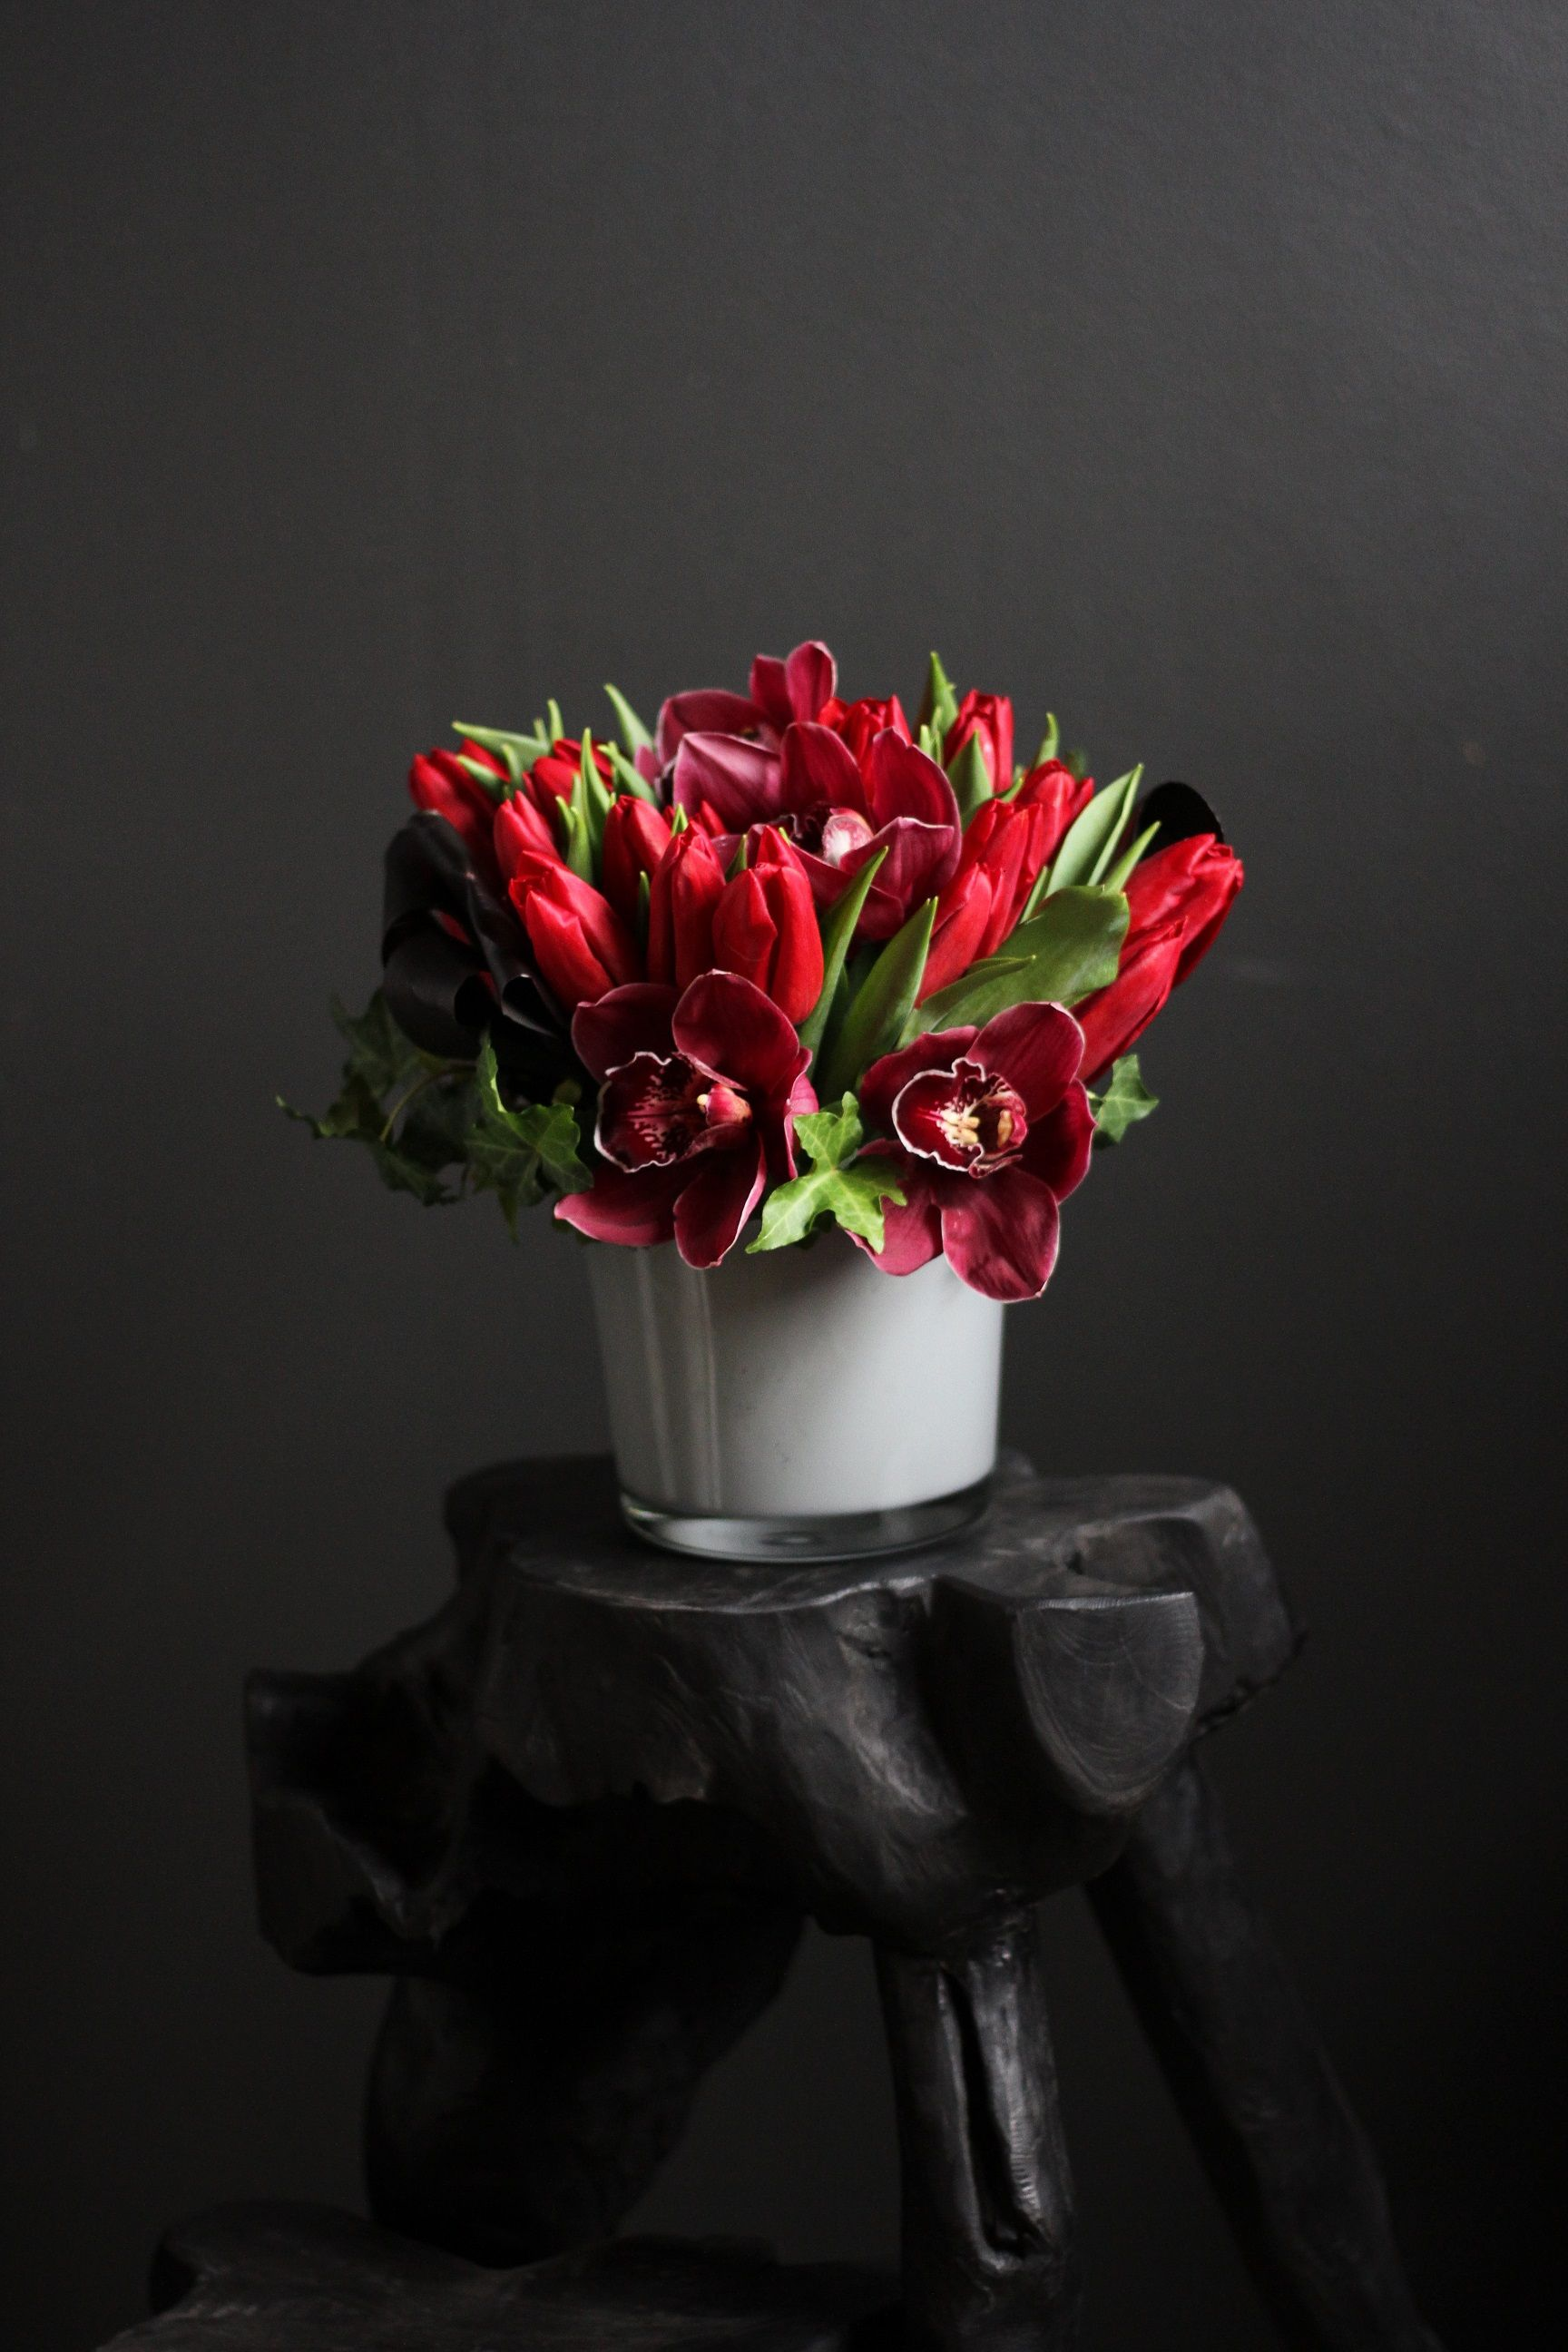 Red Tulips Designed With English Ivy And Cymbidium Orchids Tulip Kiss By Winston Flowers Valentine Flower Arrangements Valentines Flowers Winston Flowers